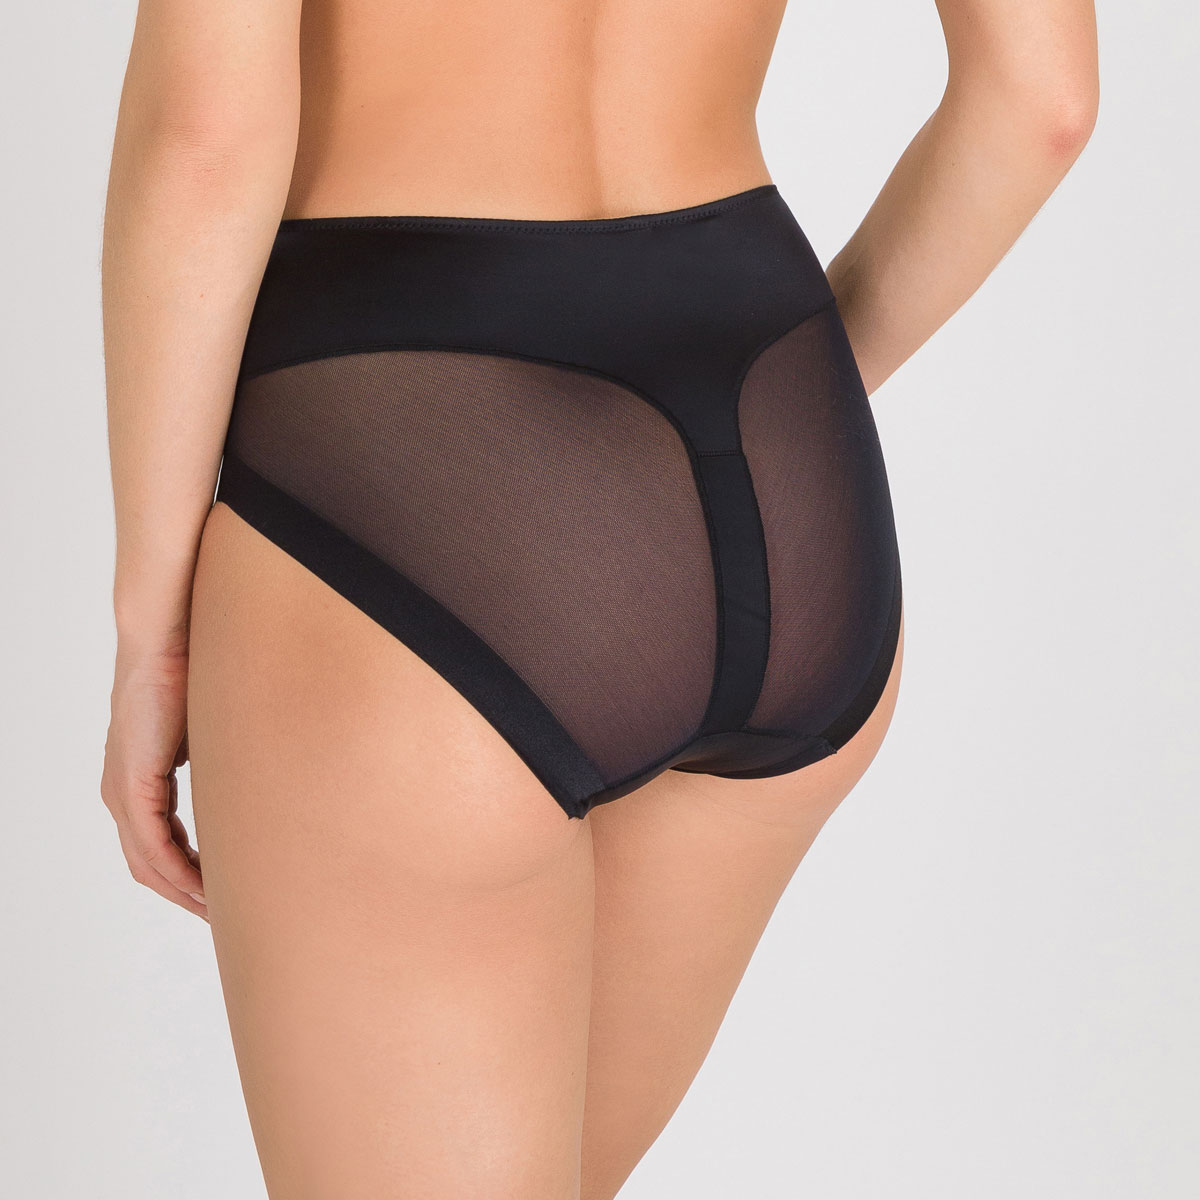 Invisible High-rise Shaping Knickers in Black – Perfect Silhouette, , PLAYTEX